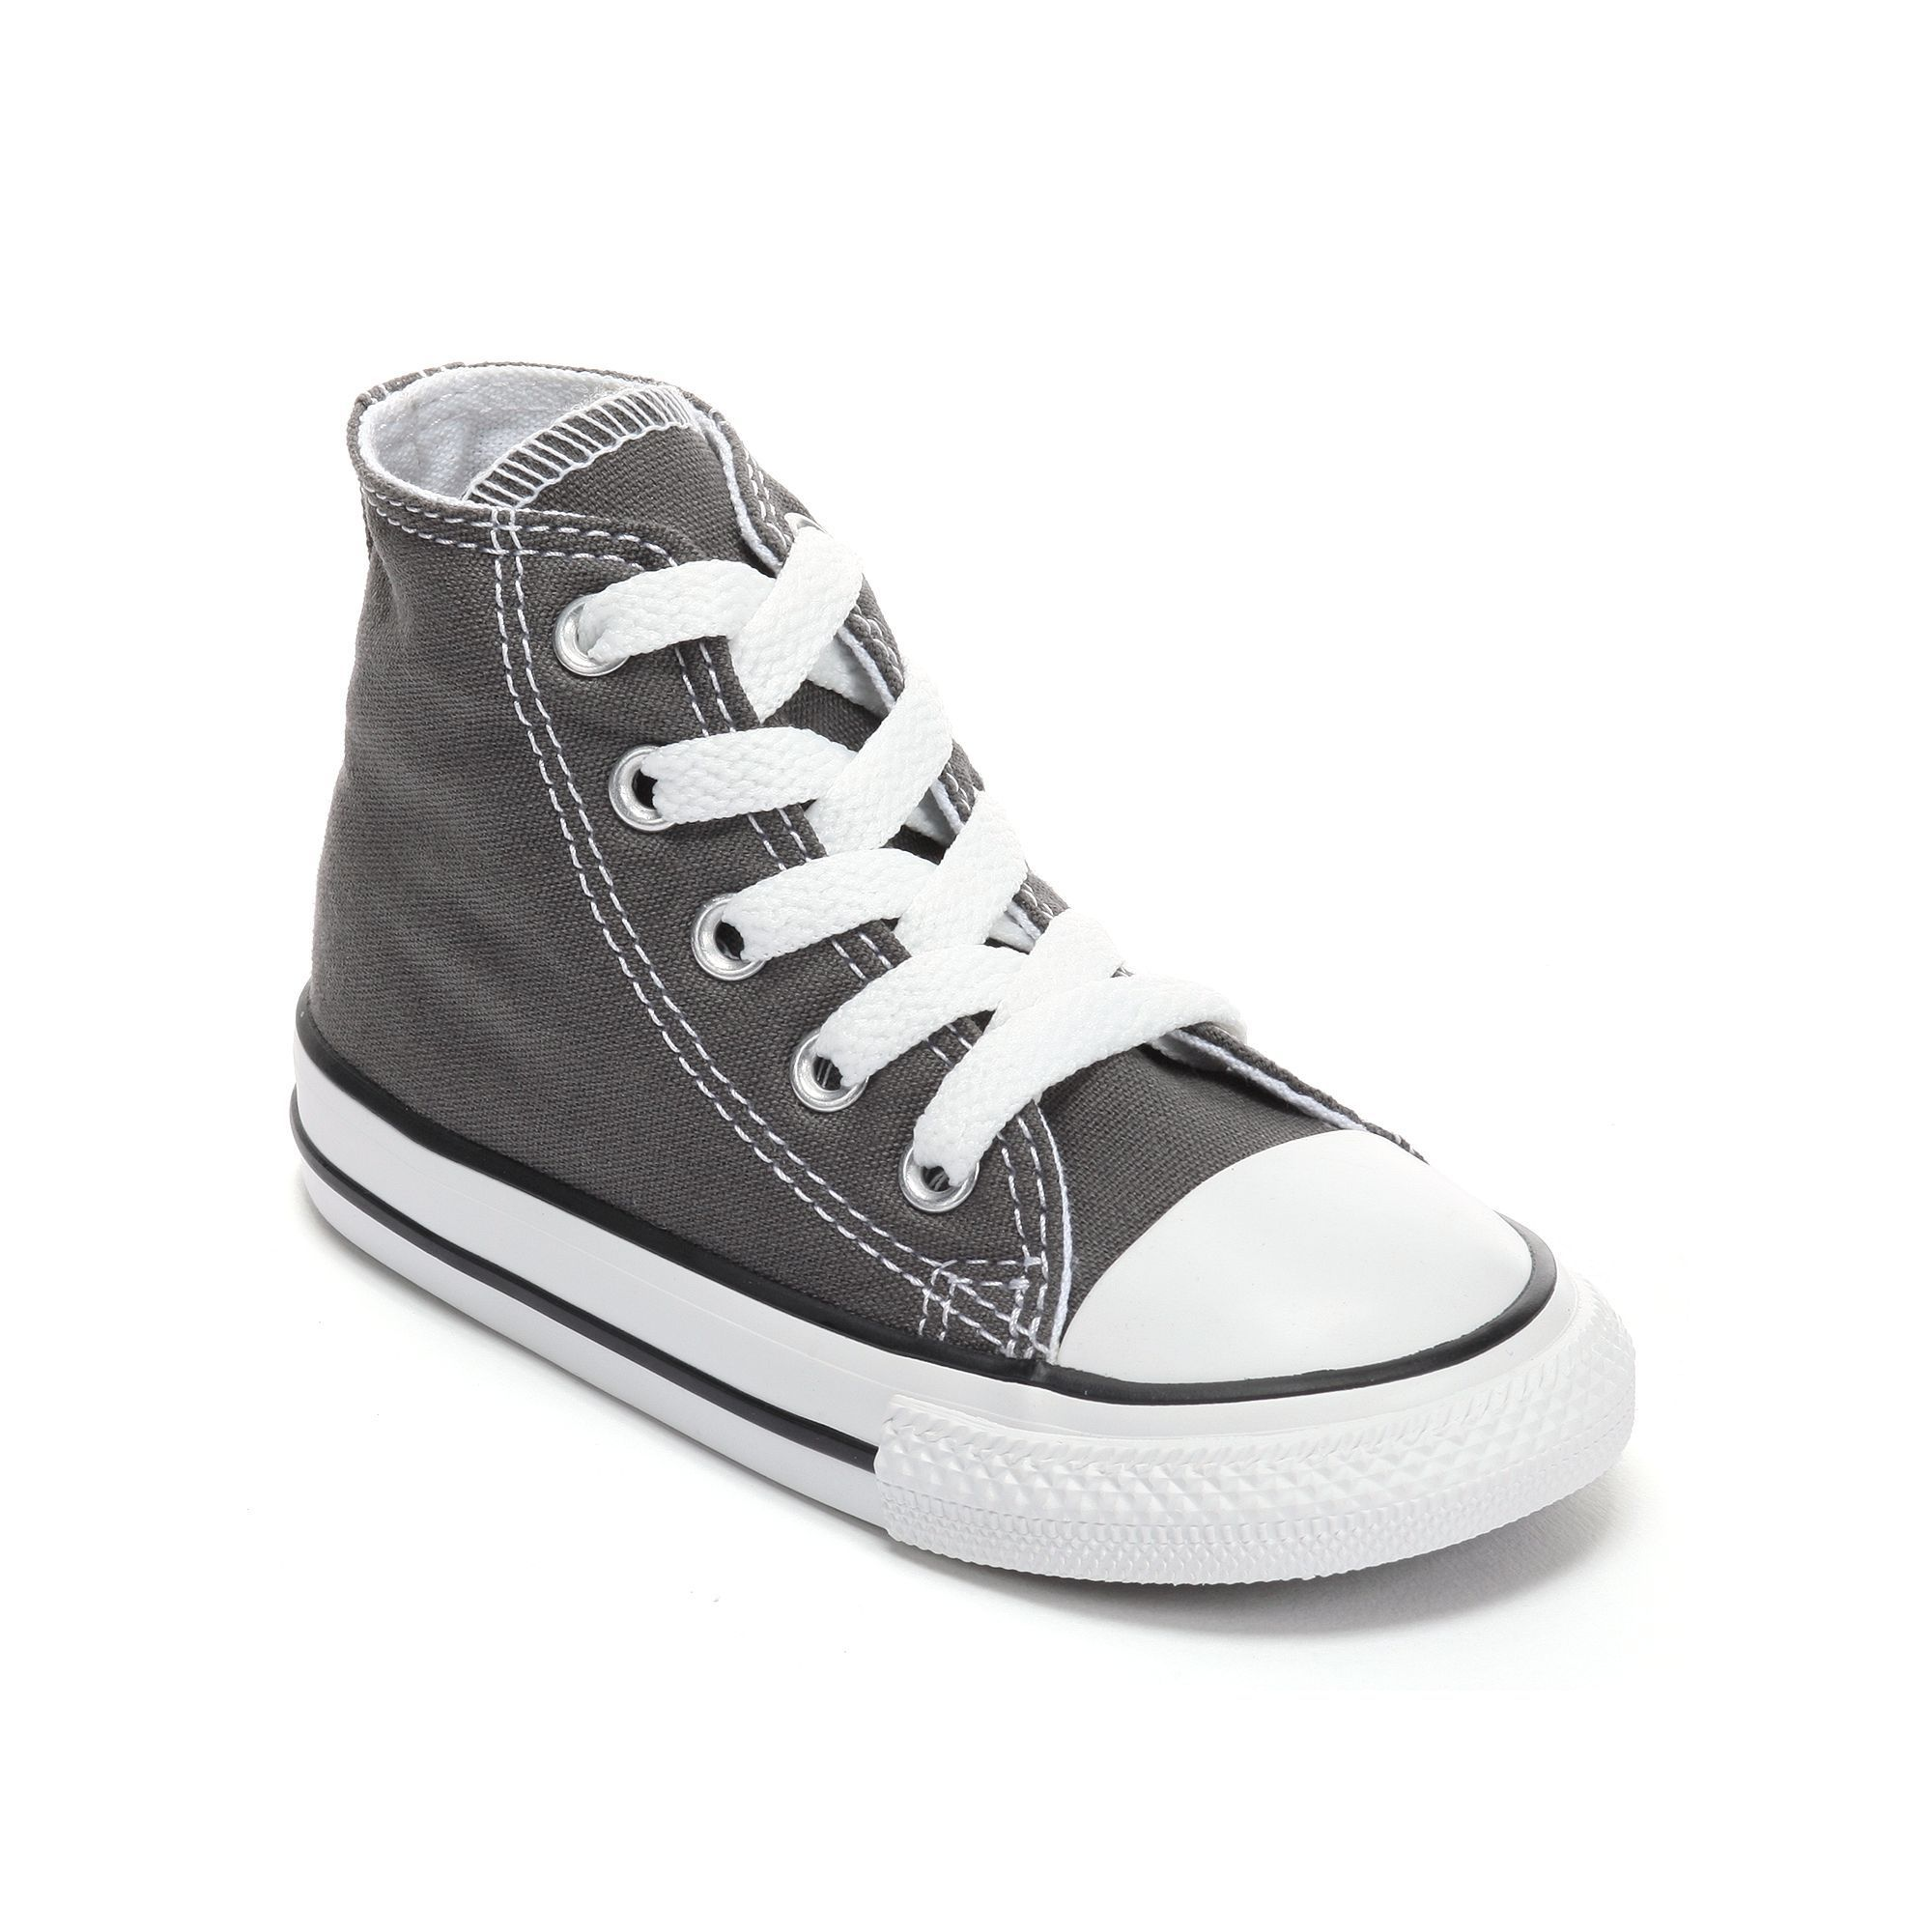 Baby / Toddler Converse Chuck Taylor All Star High-Top Sneakers, Kids Unisex ,